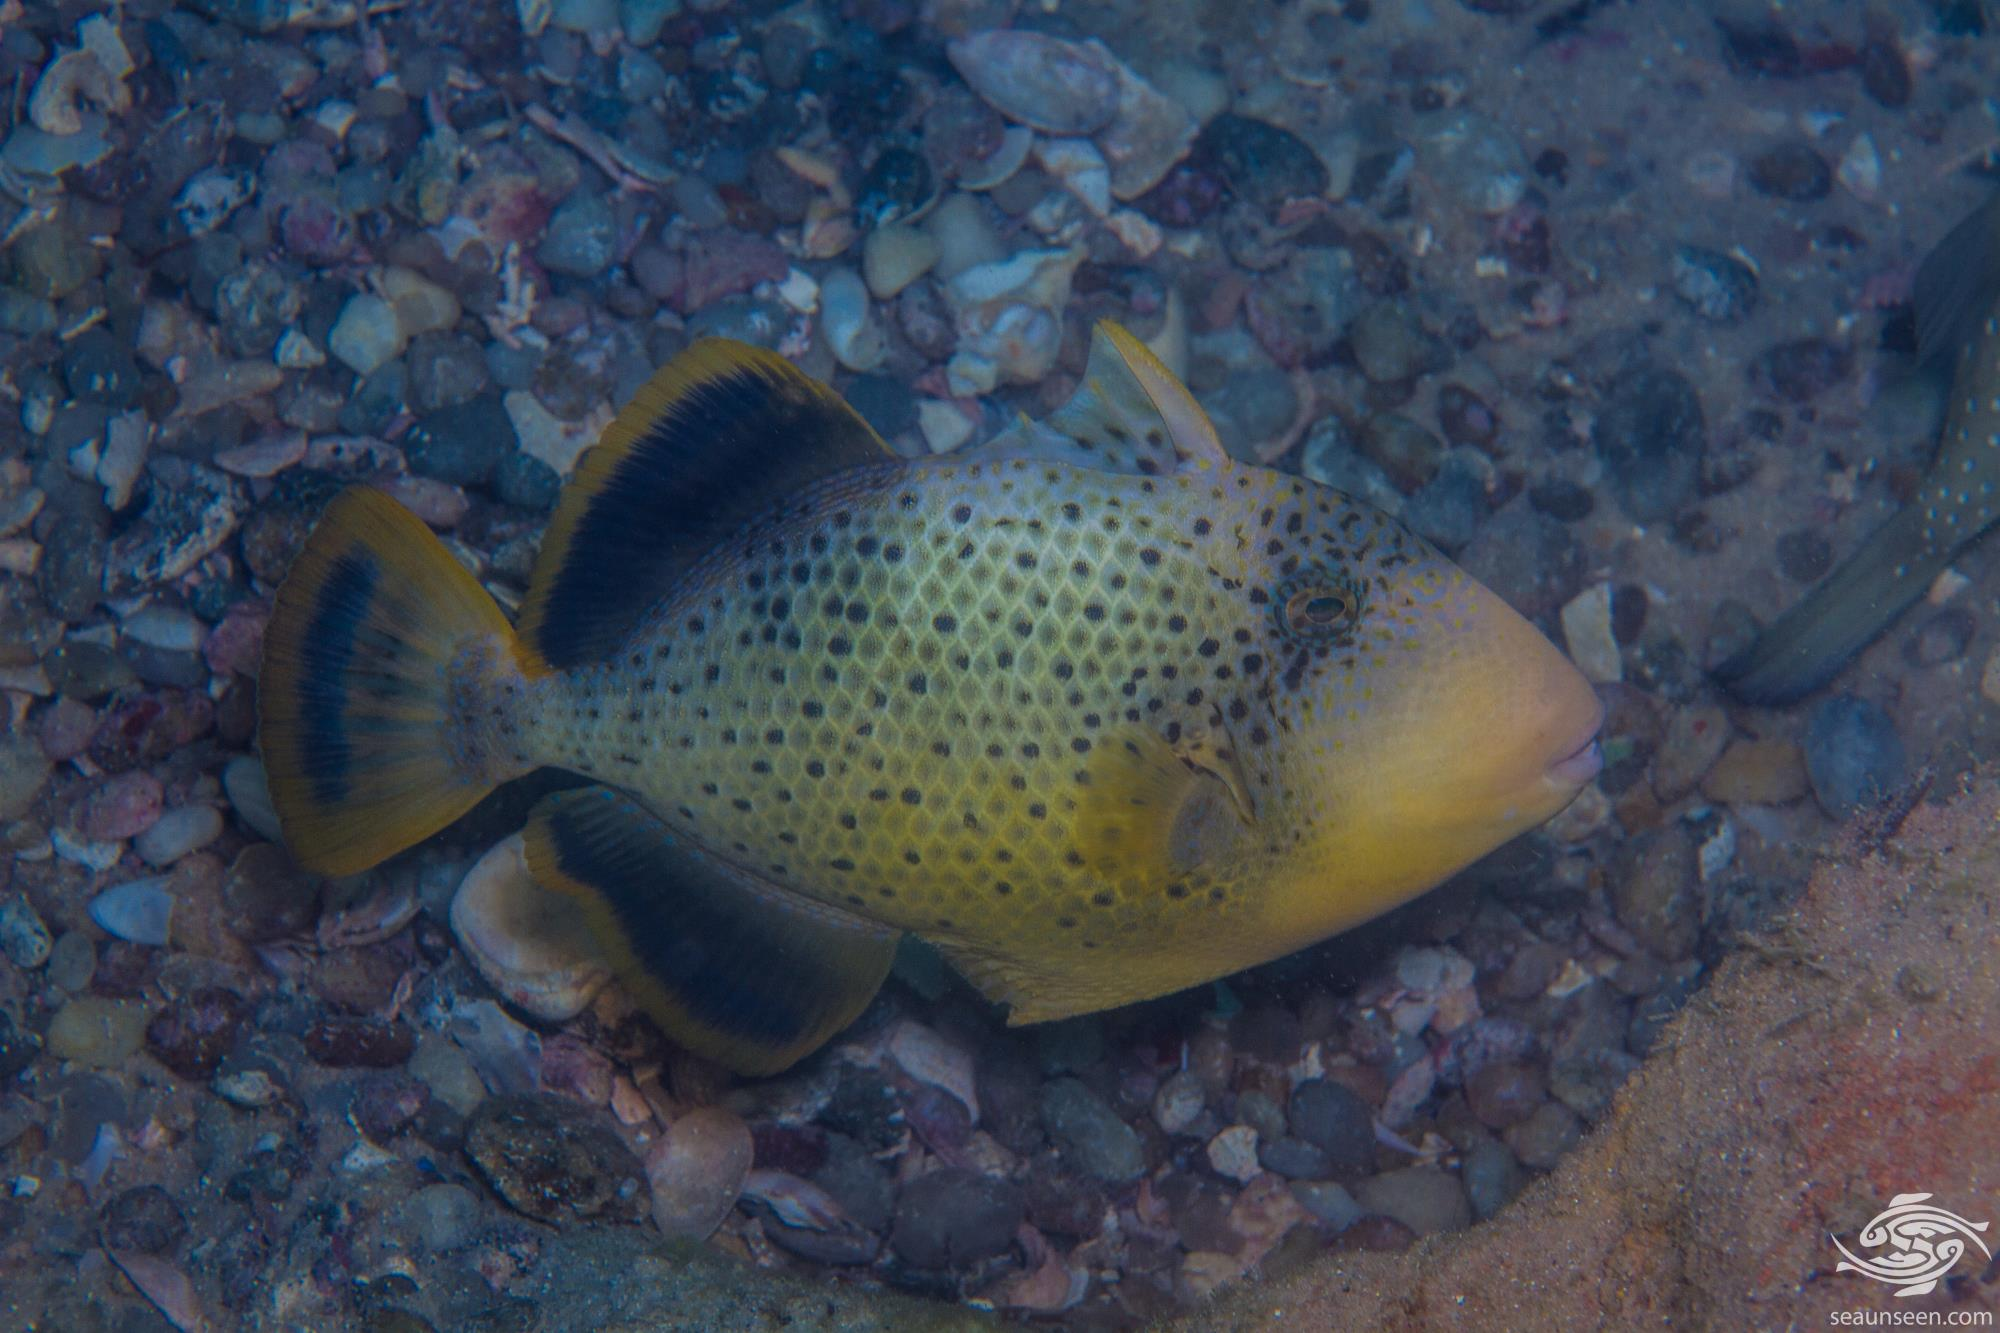 Yellow Margin Triggerfish (Pseudobalistes flavimarginatus) is also known as the Yellowmargin Trigger,Yellowface Triggerfish and Pineapple Triggerfish